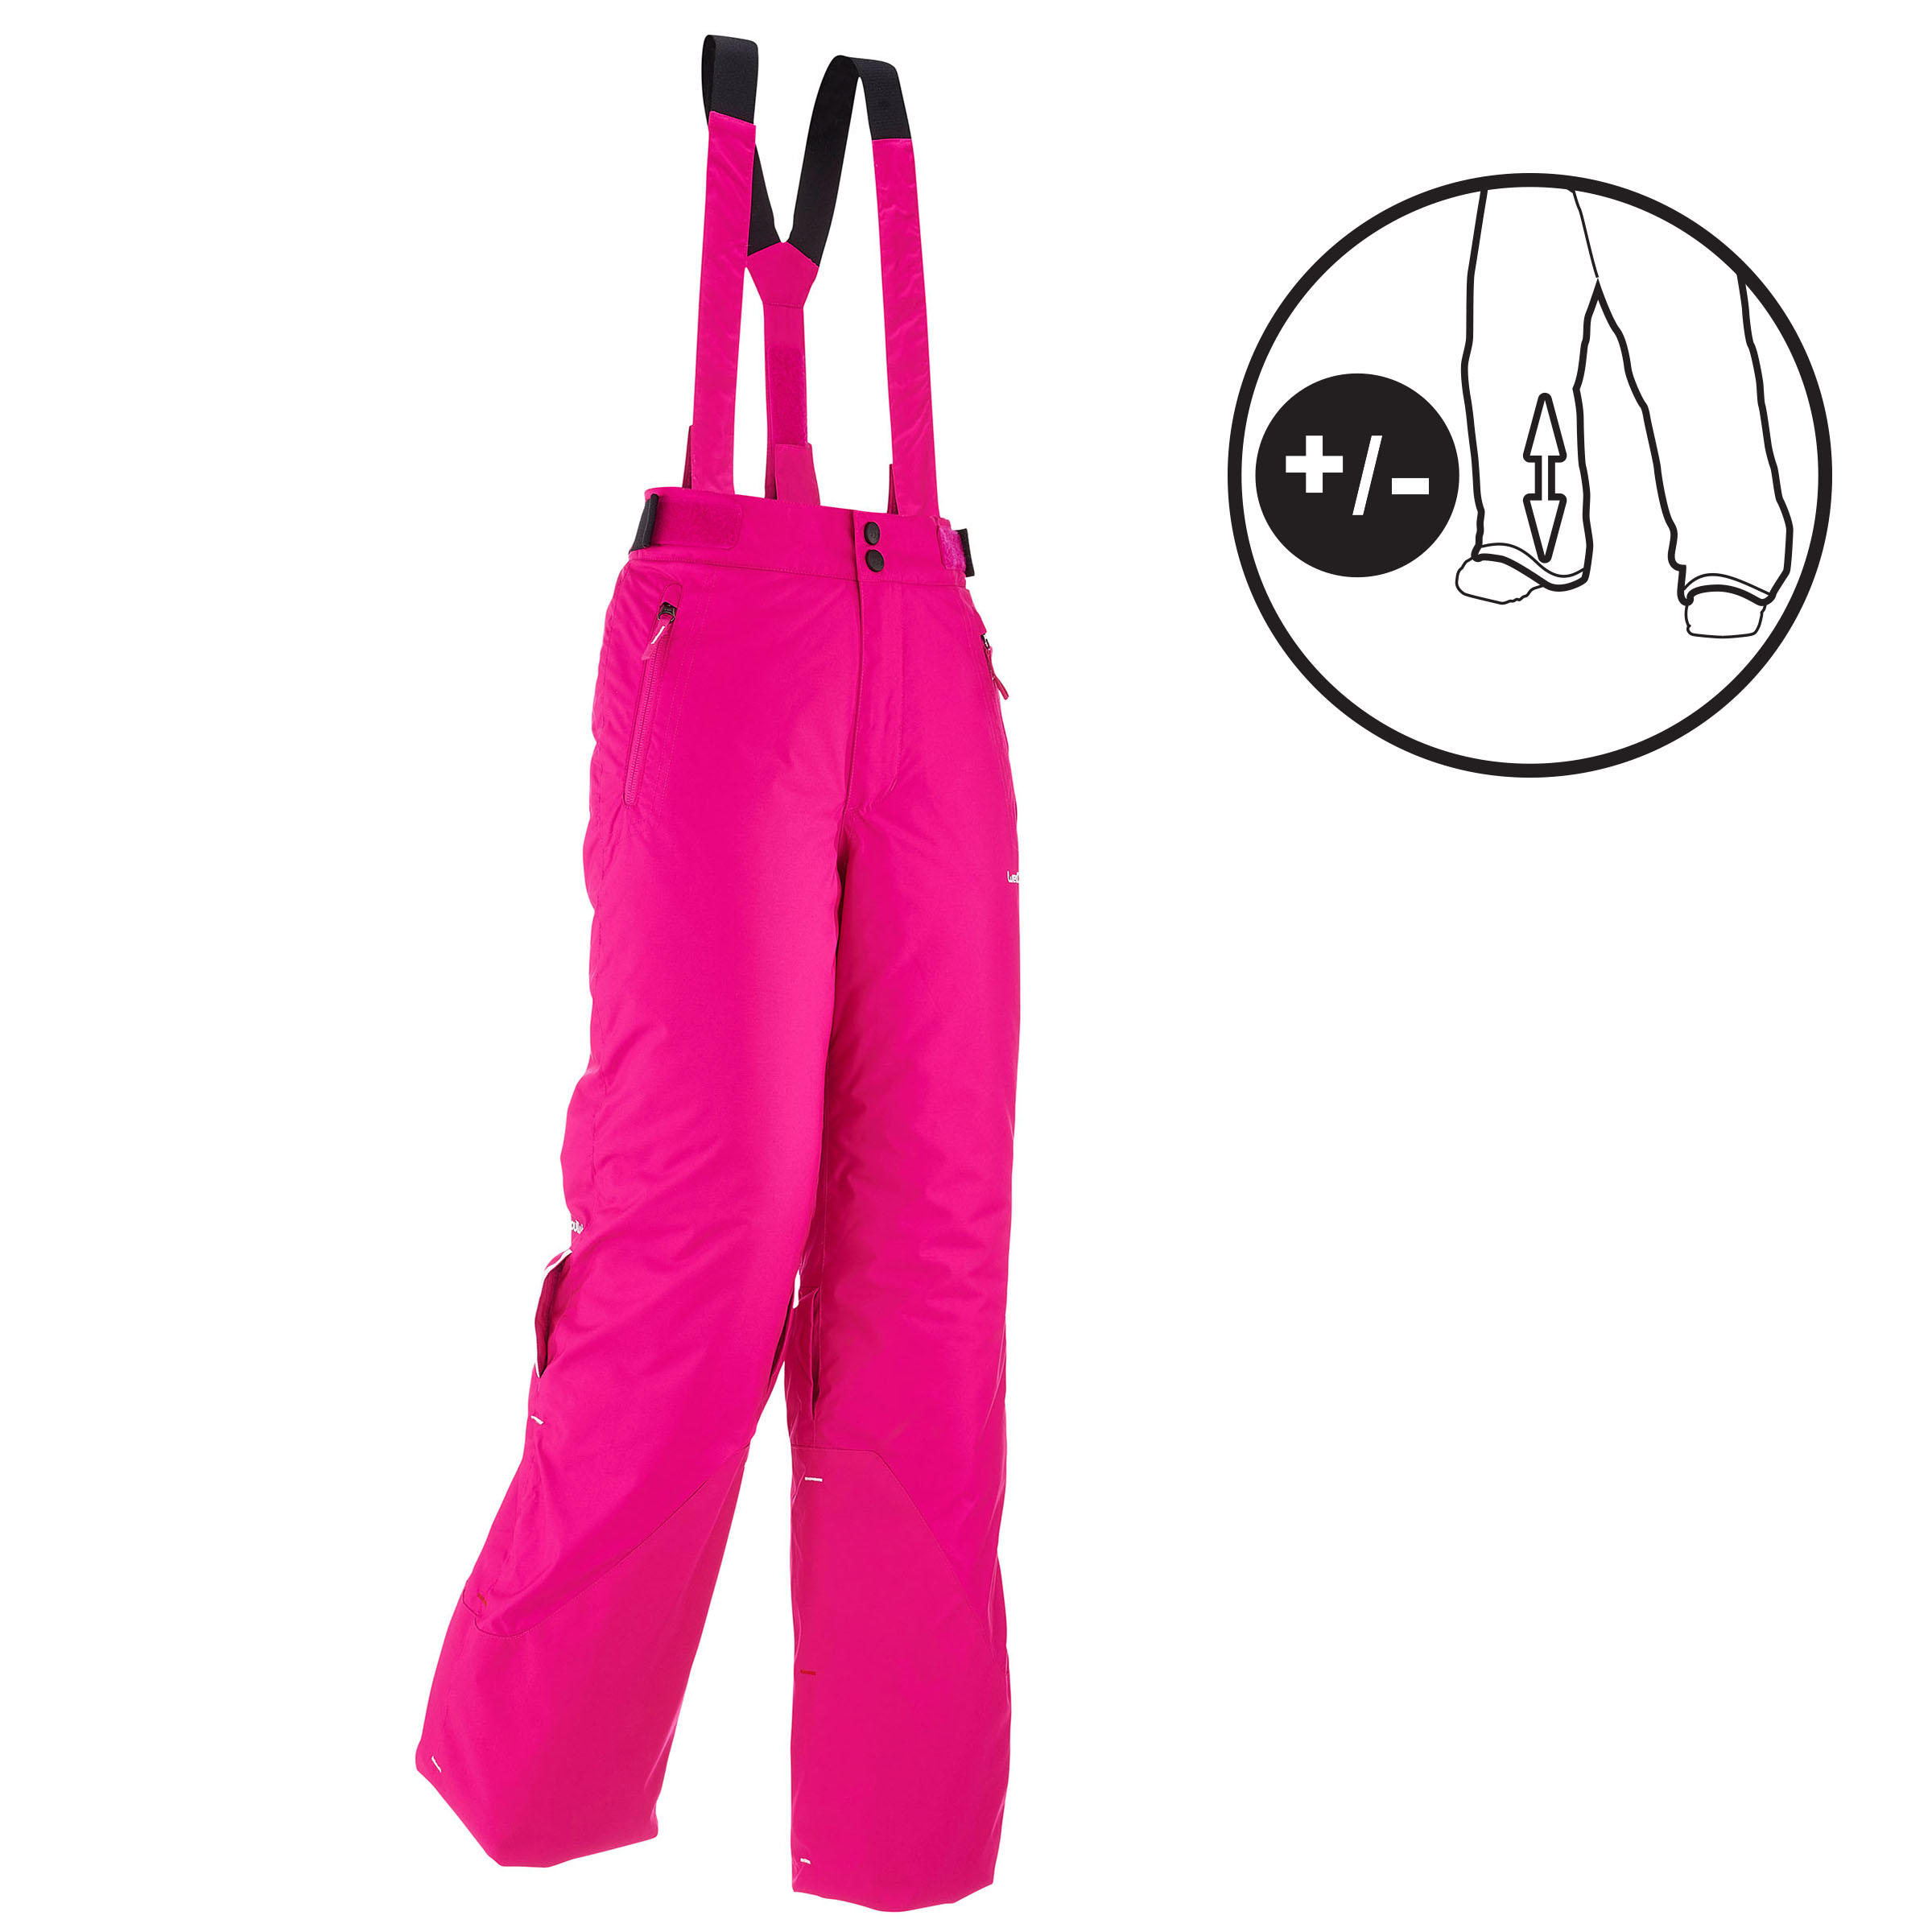 Children's Ski Pants Ski-P 500 Pnf Pink